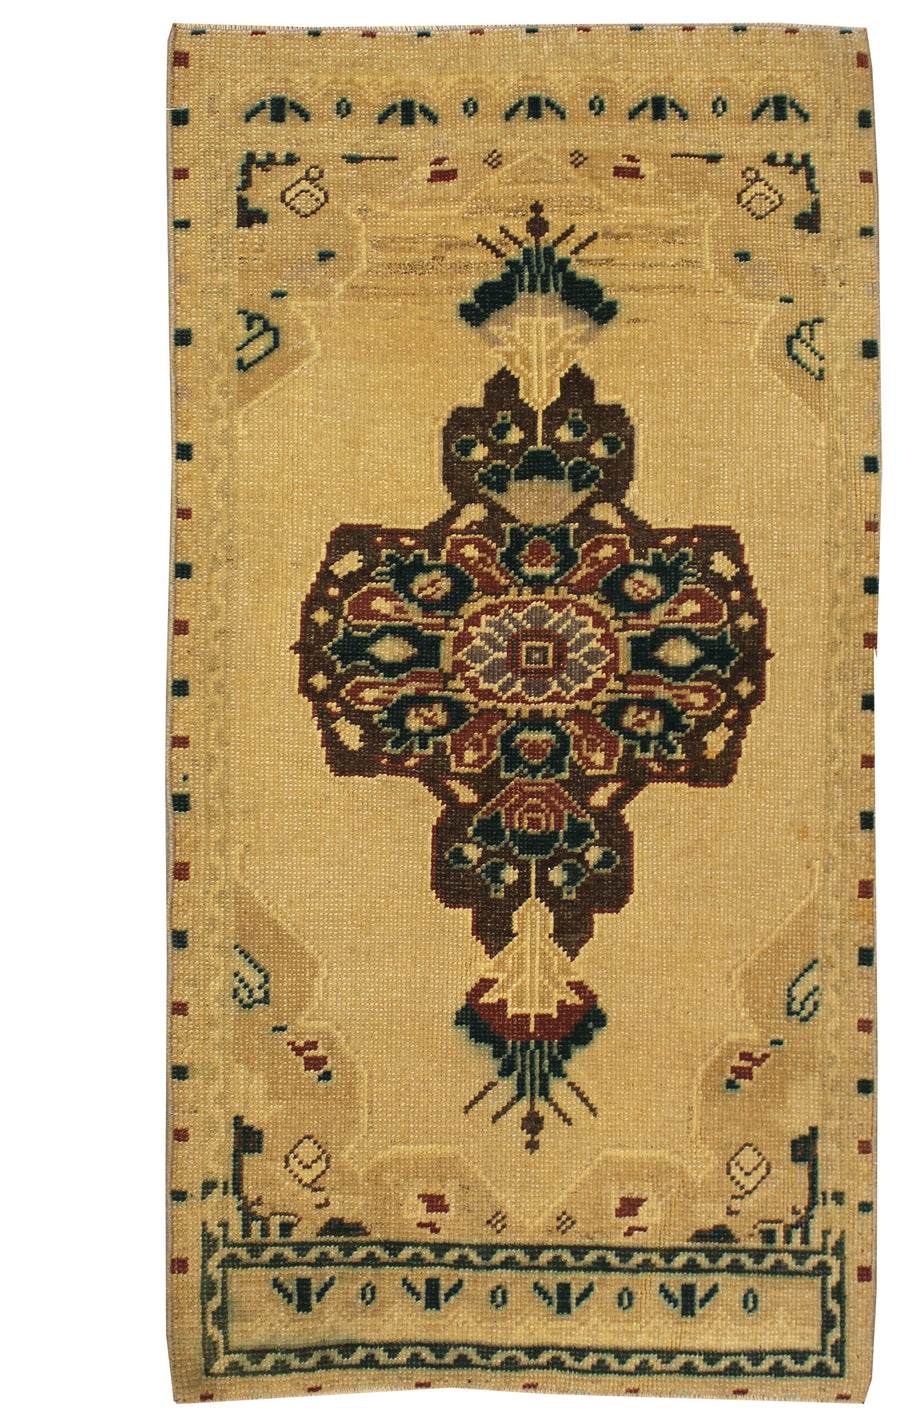 YASTIC HANDKNOTTED RUG, J57017